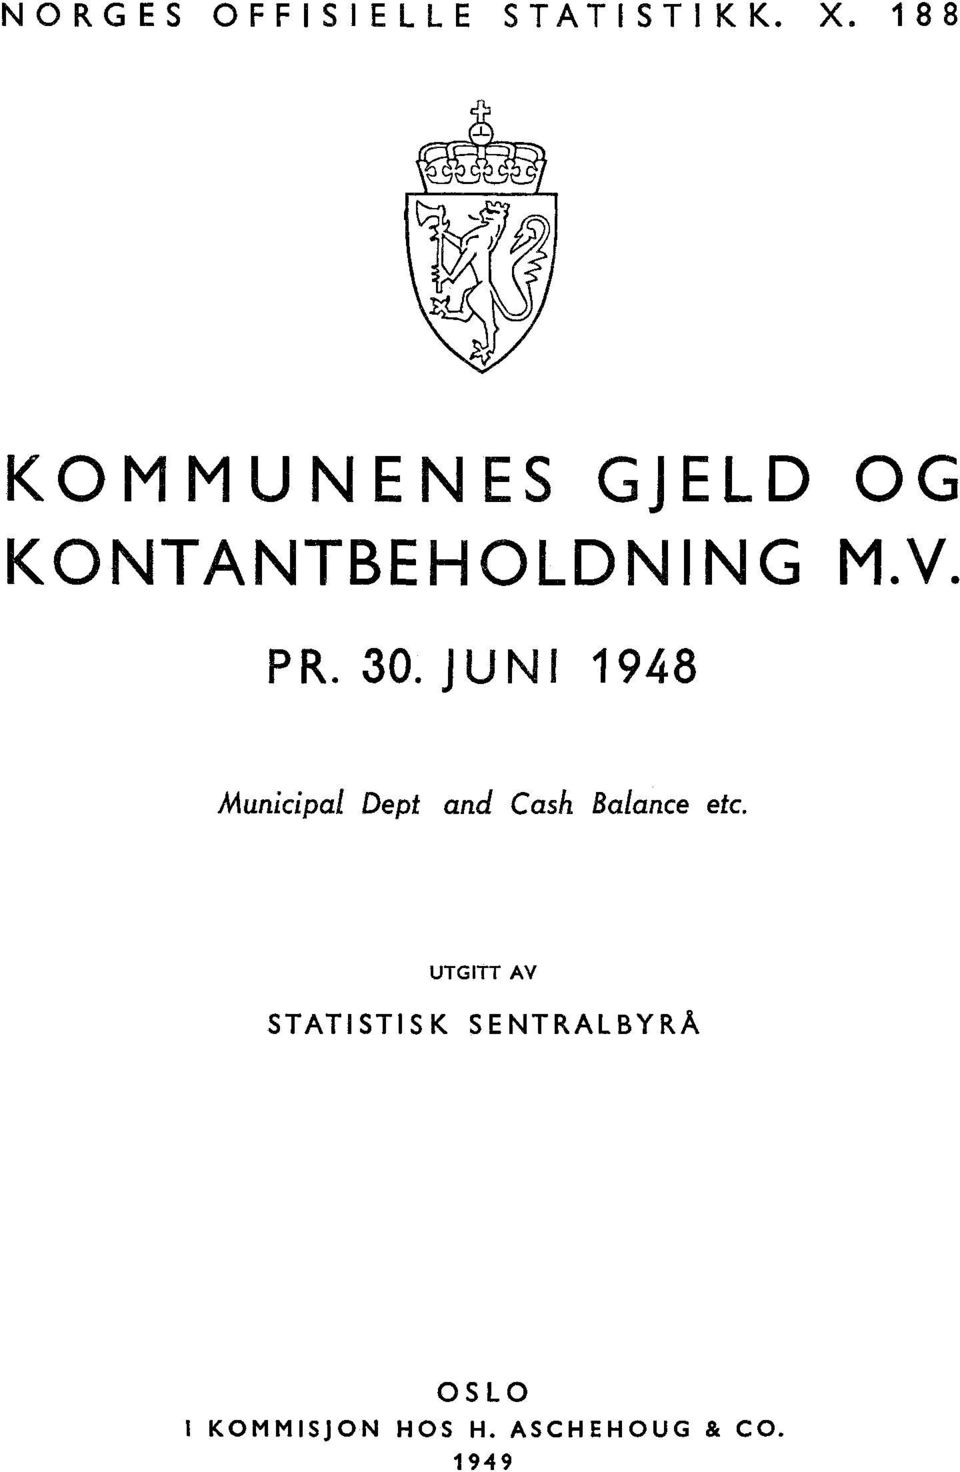 30. JUNI 1948 Municipal Dept and Cash Balance etc.